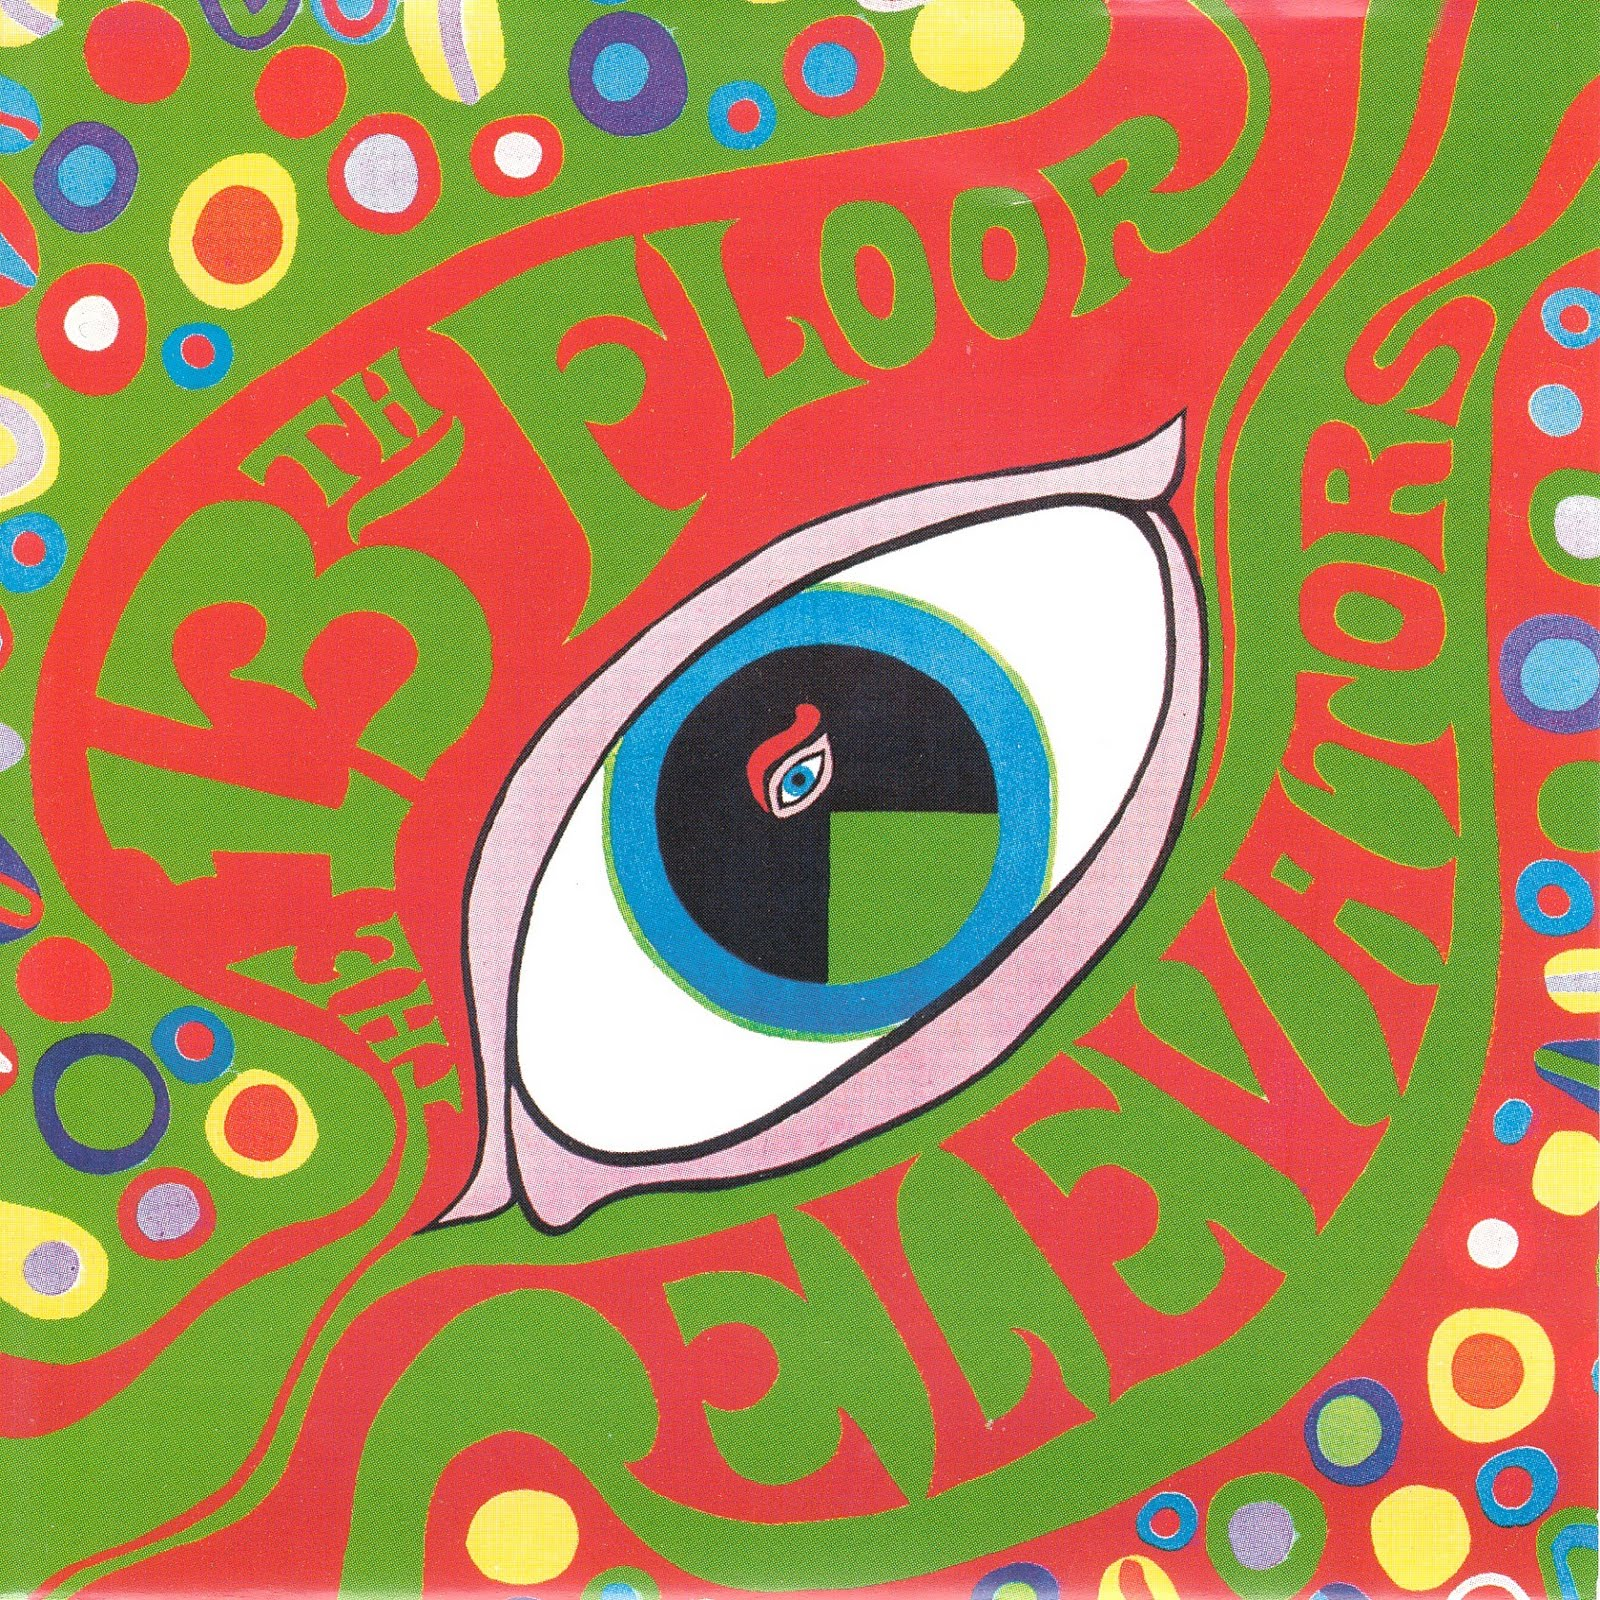 Solidboy music blog 13th floor elevators the for 13th floor elevators psychedelic circus